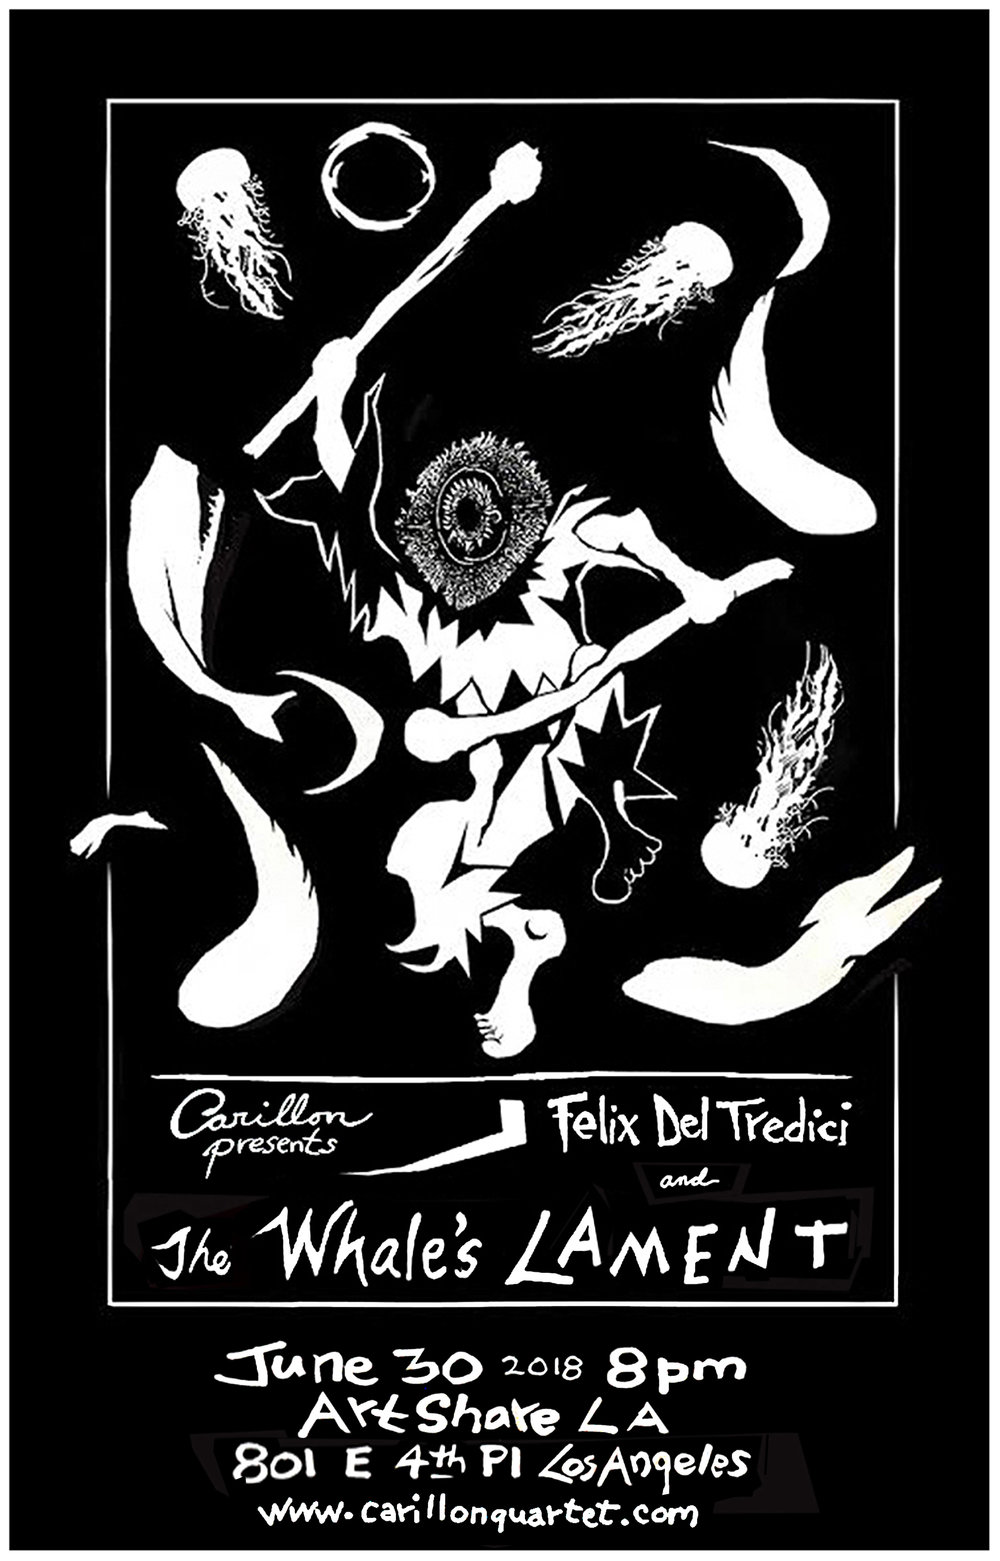 Carillon Presents: The Whale's Lament - Poster by: Robert Del Tredici